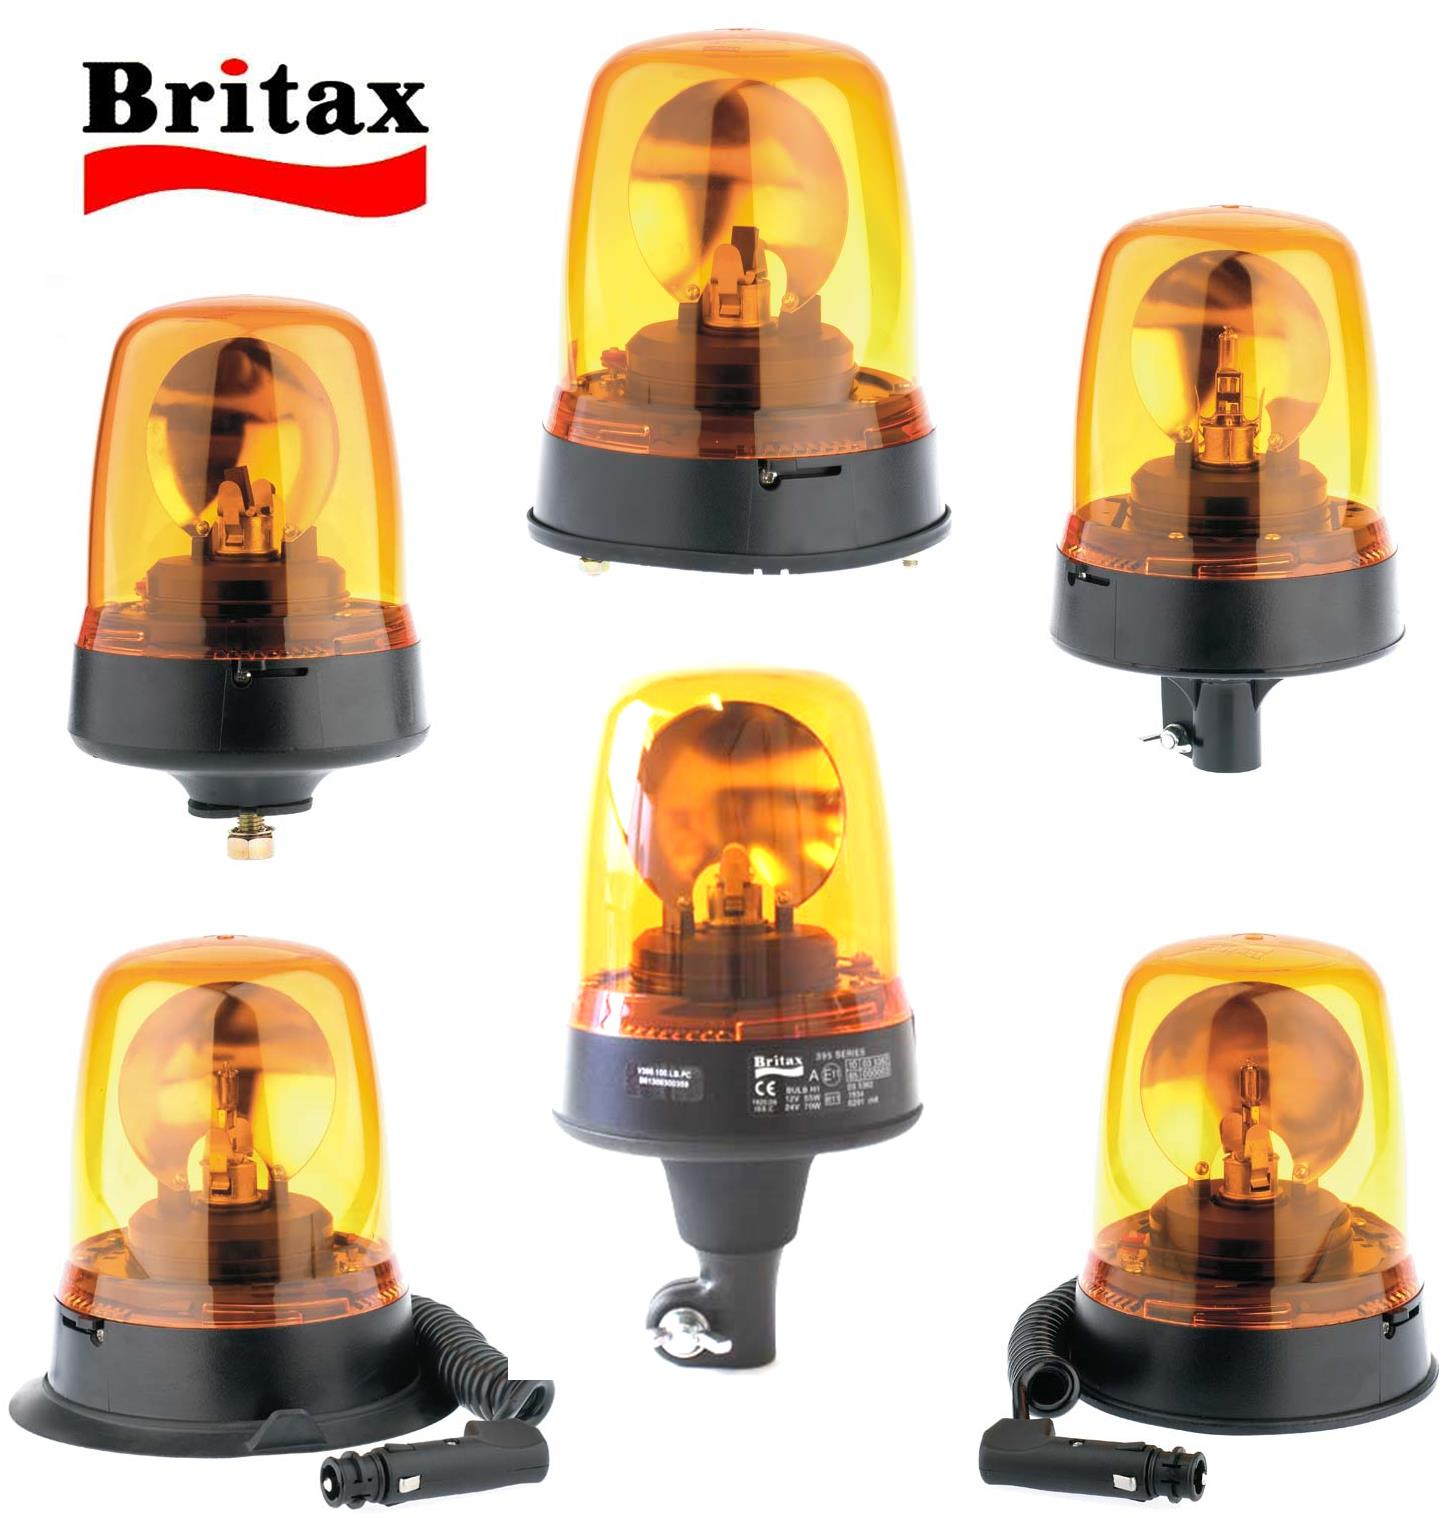 Britax 390 Series Rotating Beacons